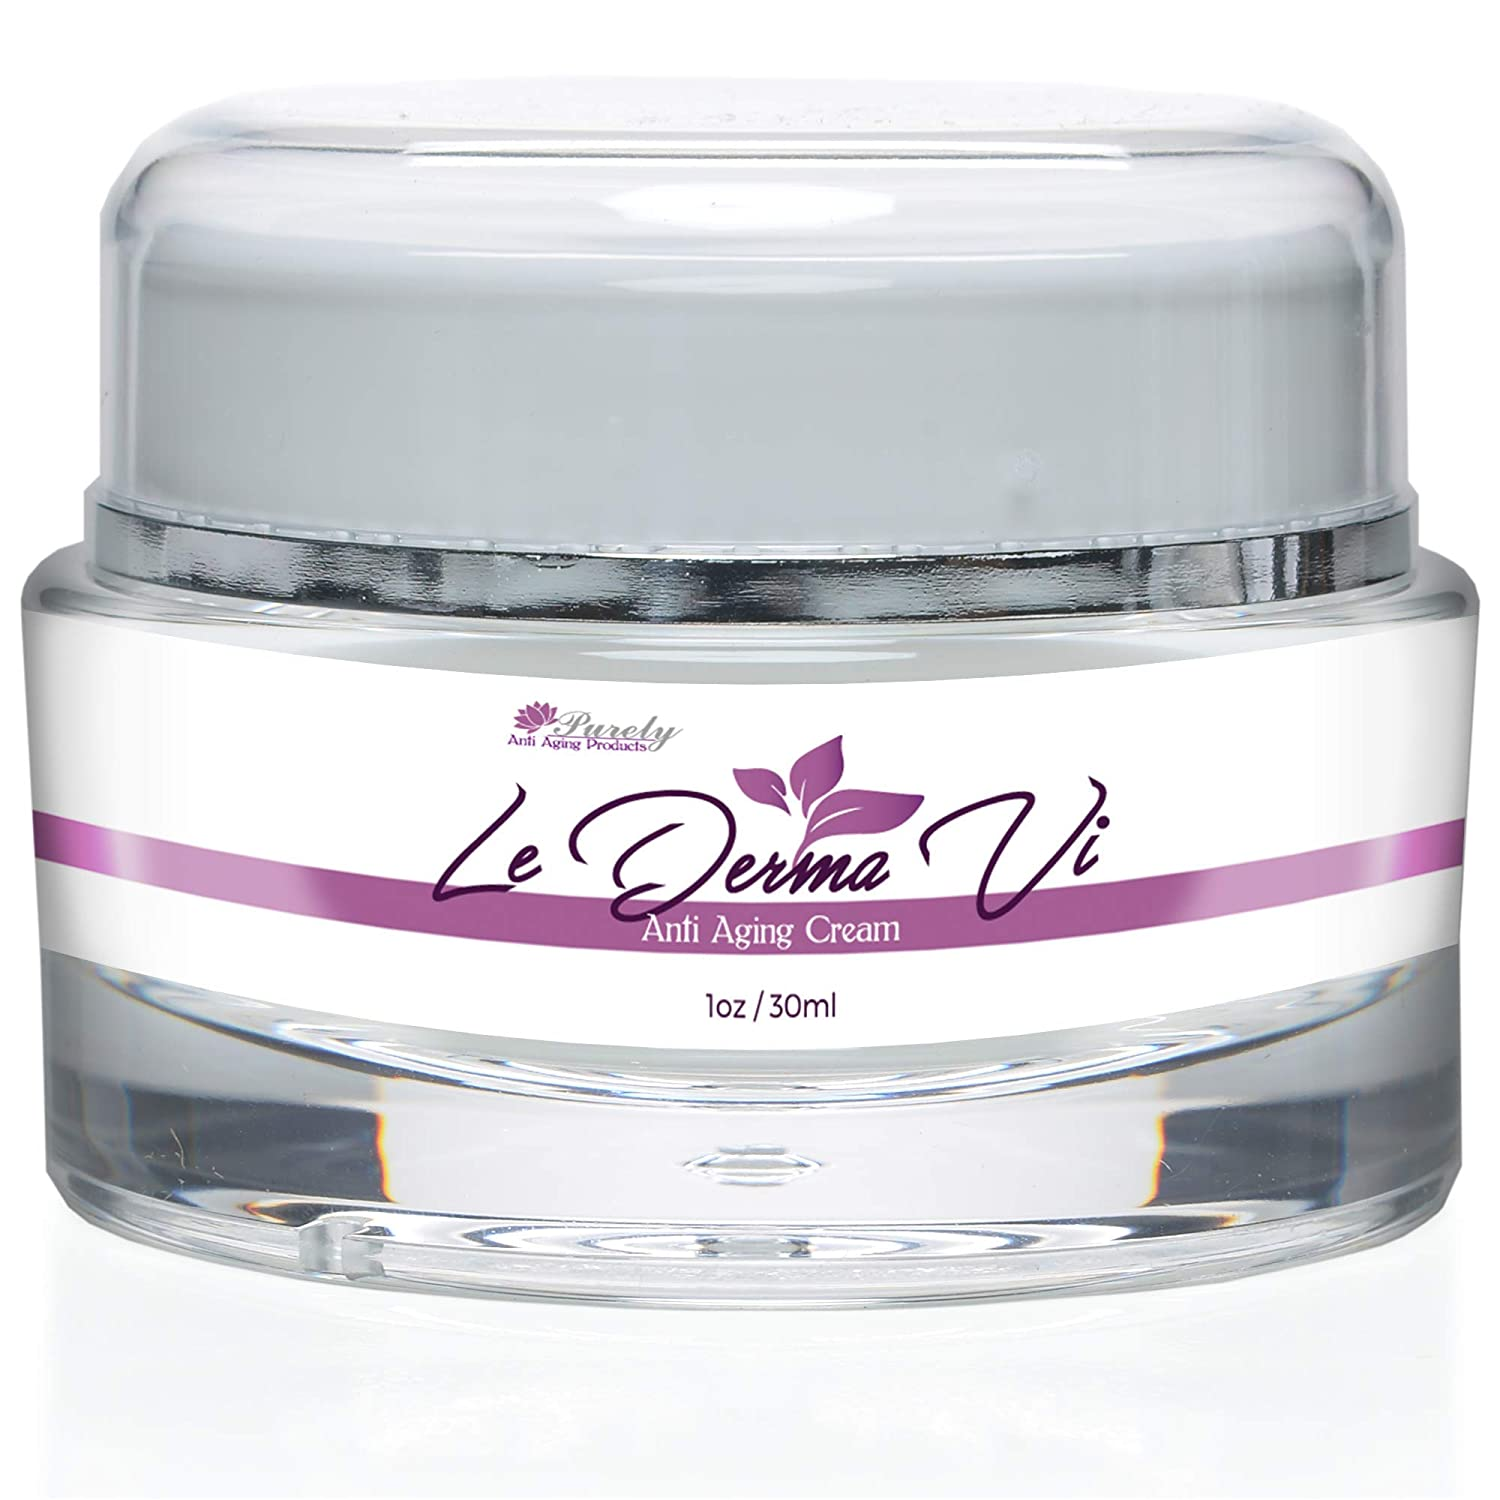 Le Derma Vi - Anti Aging Cream - Restore Your Youthful Beauty and Keep Your Skin Looking Young With Our Best Anti Aging Cream - Prevent The Appearance of Aging with Le Derma Vi Cream